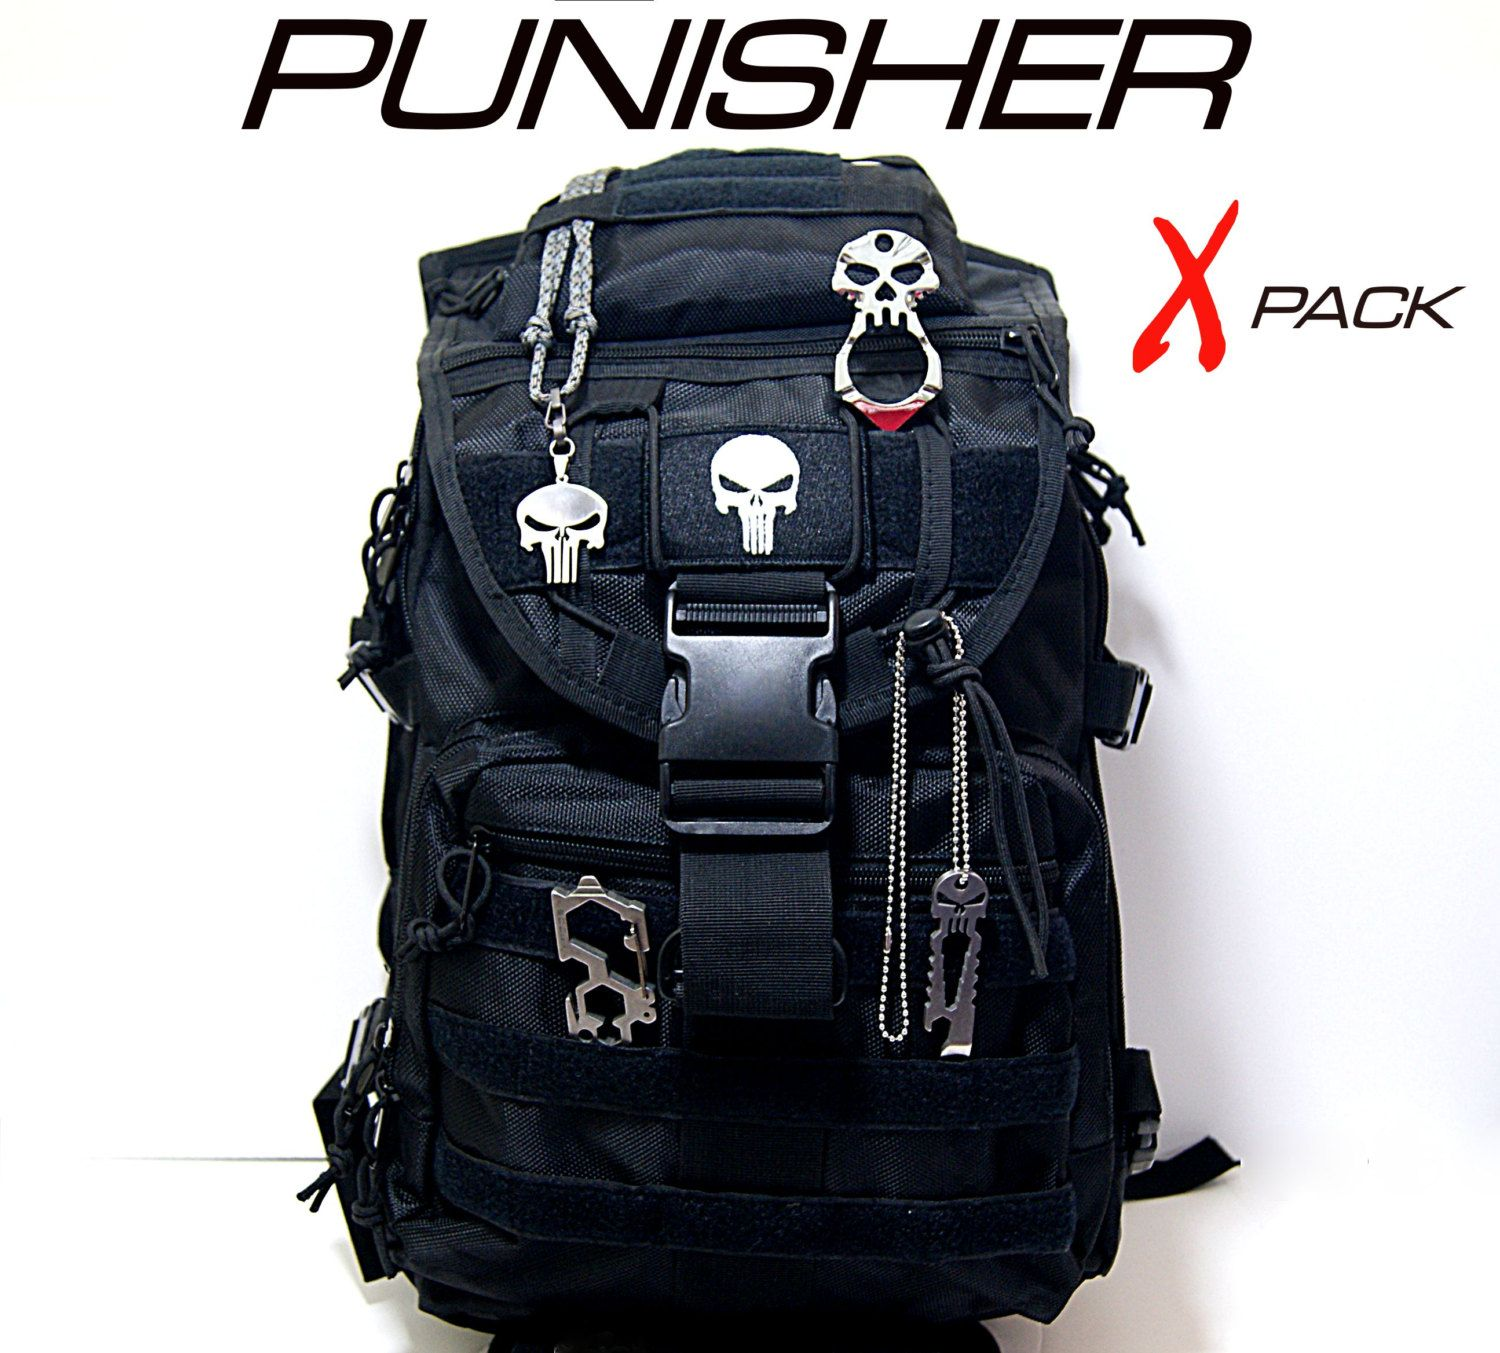 33ae0098e64f PUNISHER Tactical Black 3 Day Assault Backpack w  4 Self Defense    Accessories